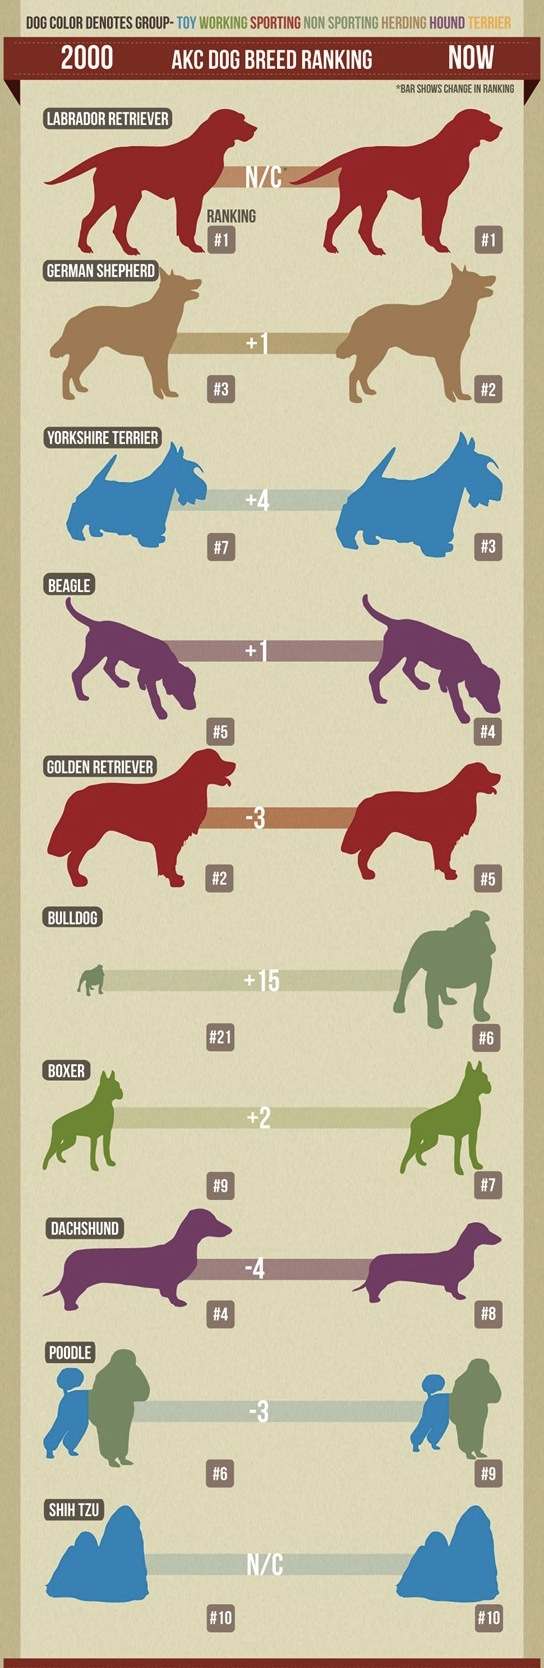 February 09, 2012. Most popular dog breeds in the U.S. — What's